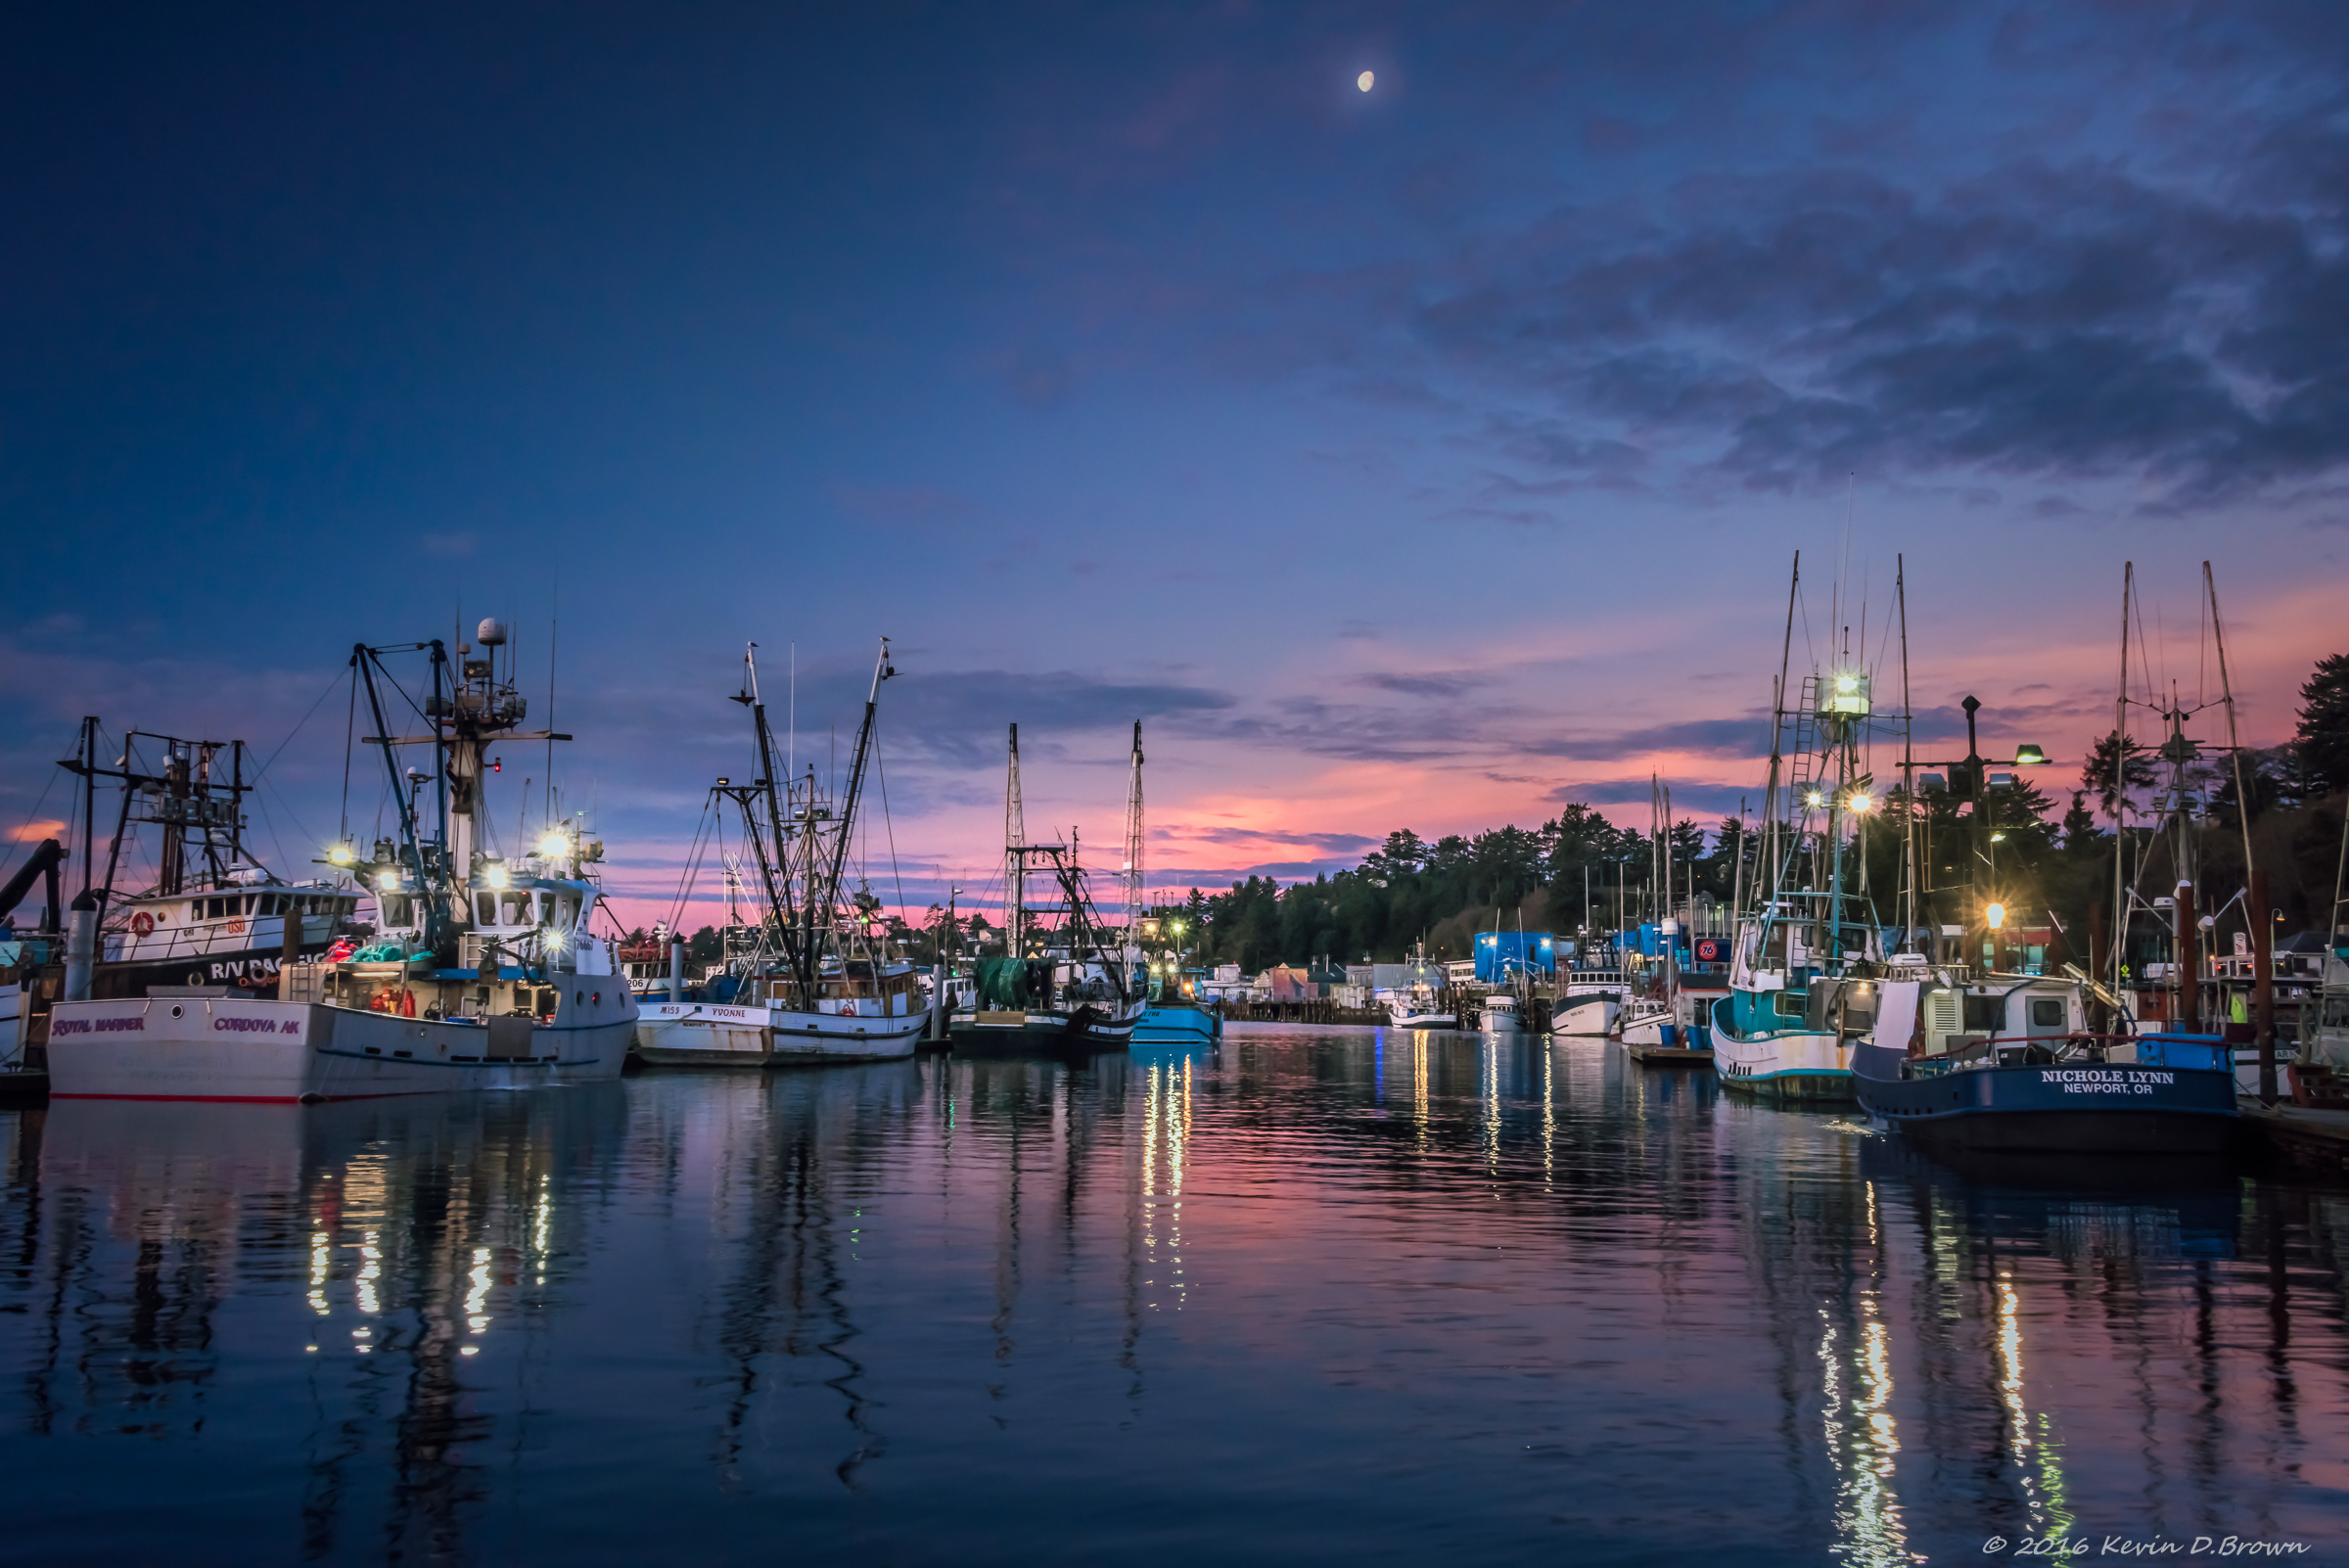 The moon falling in the sky as the sun begins to rise on Yaquina Bay in Newport, Oregon